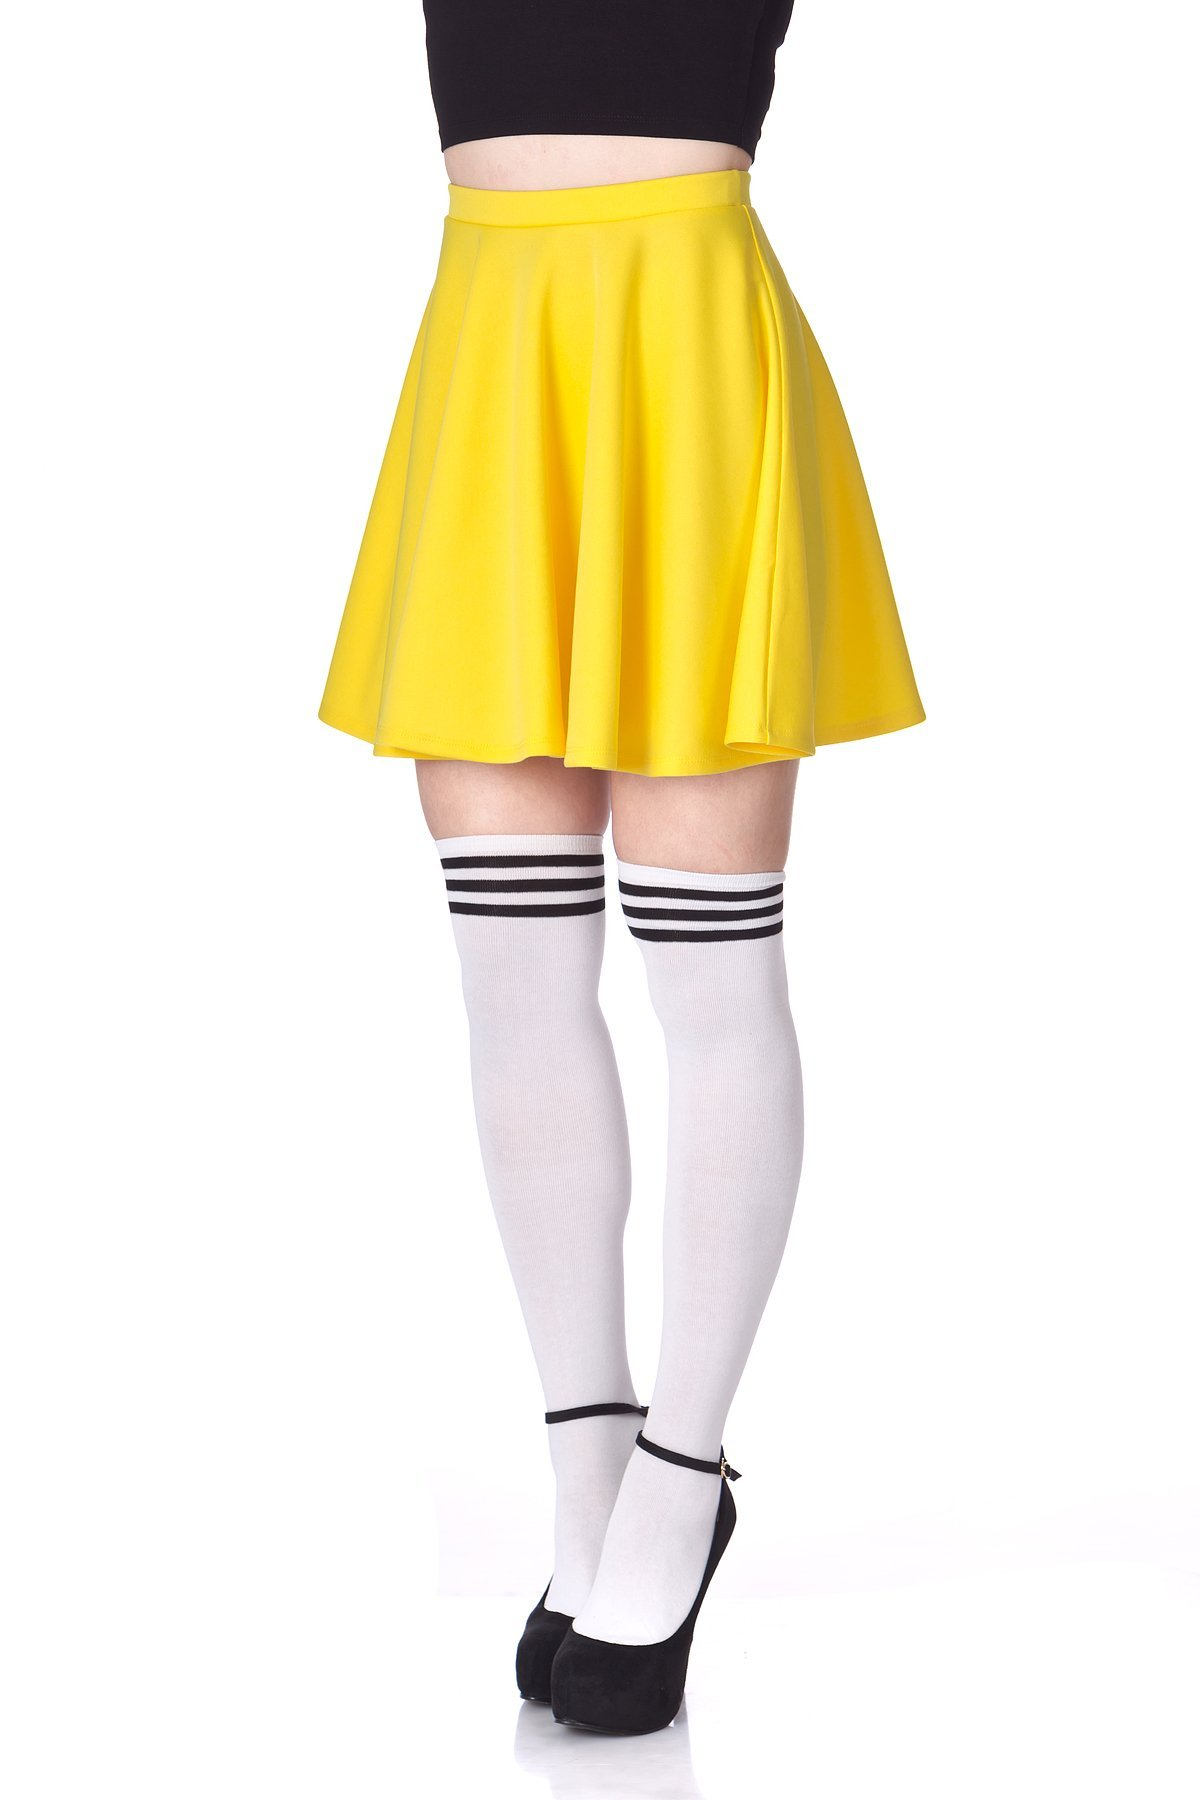 Flouncy High Waist A line Full Flared Circle Swing Dance Party Casual Skater Short Mini Skirt Yellow 06 2